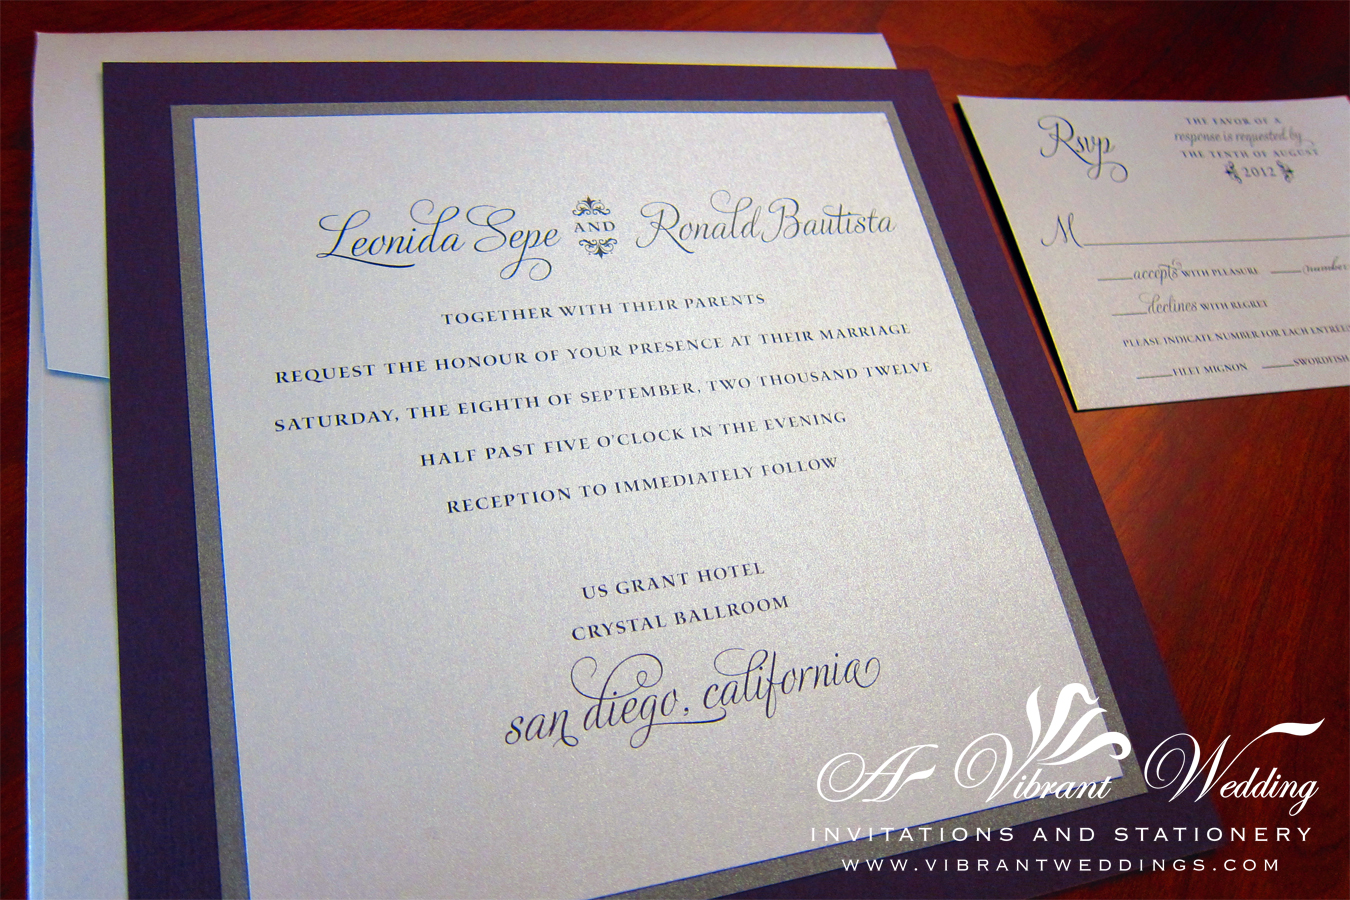 Silver Wedding Invitations: A Vibrant Wedding